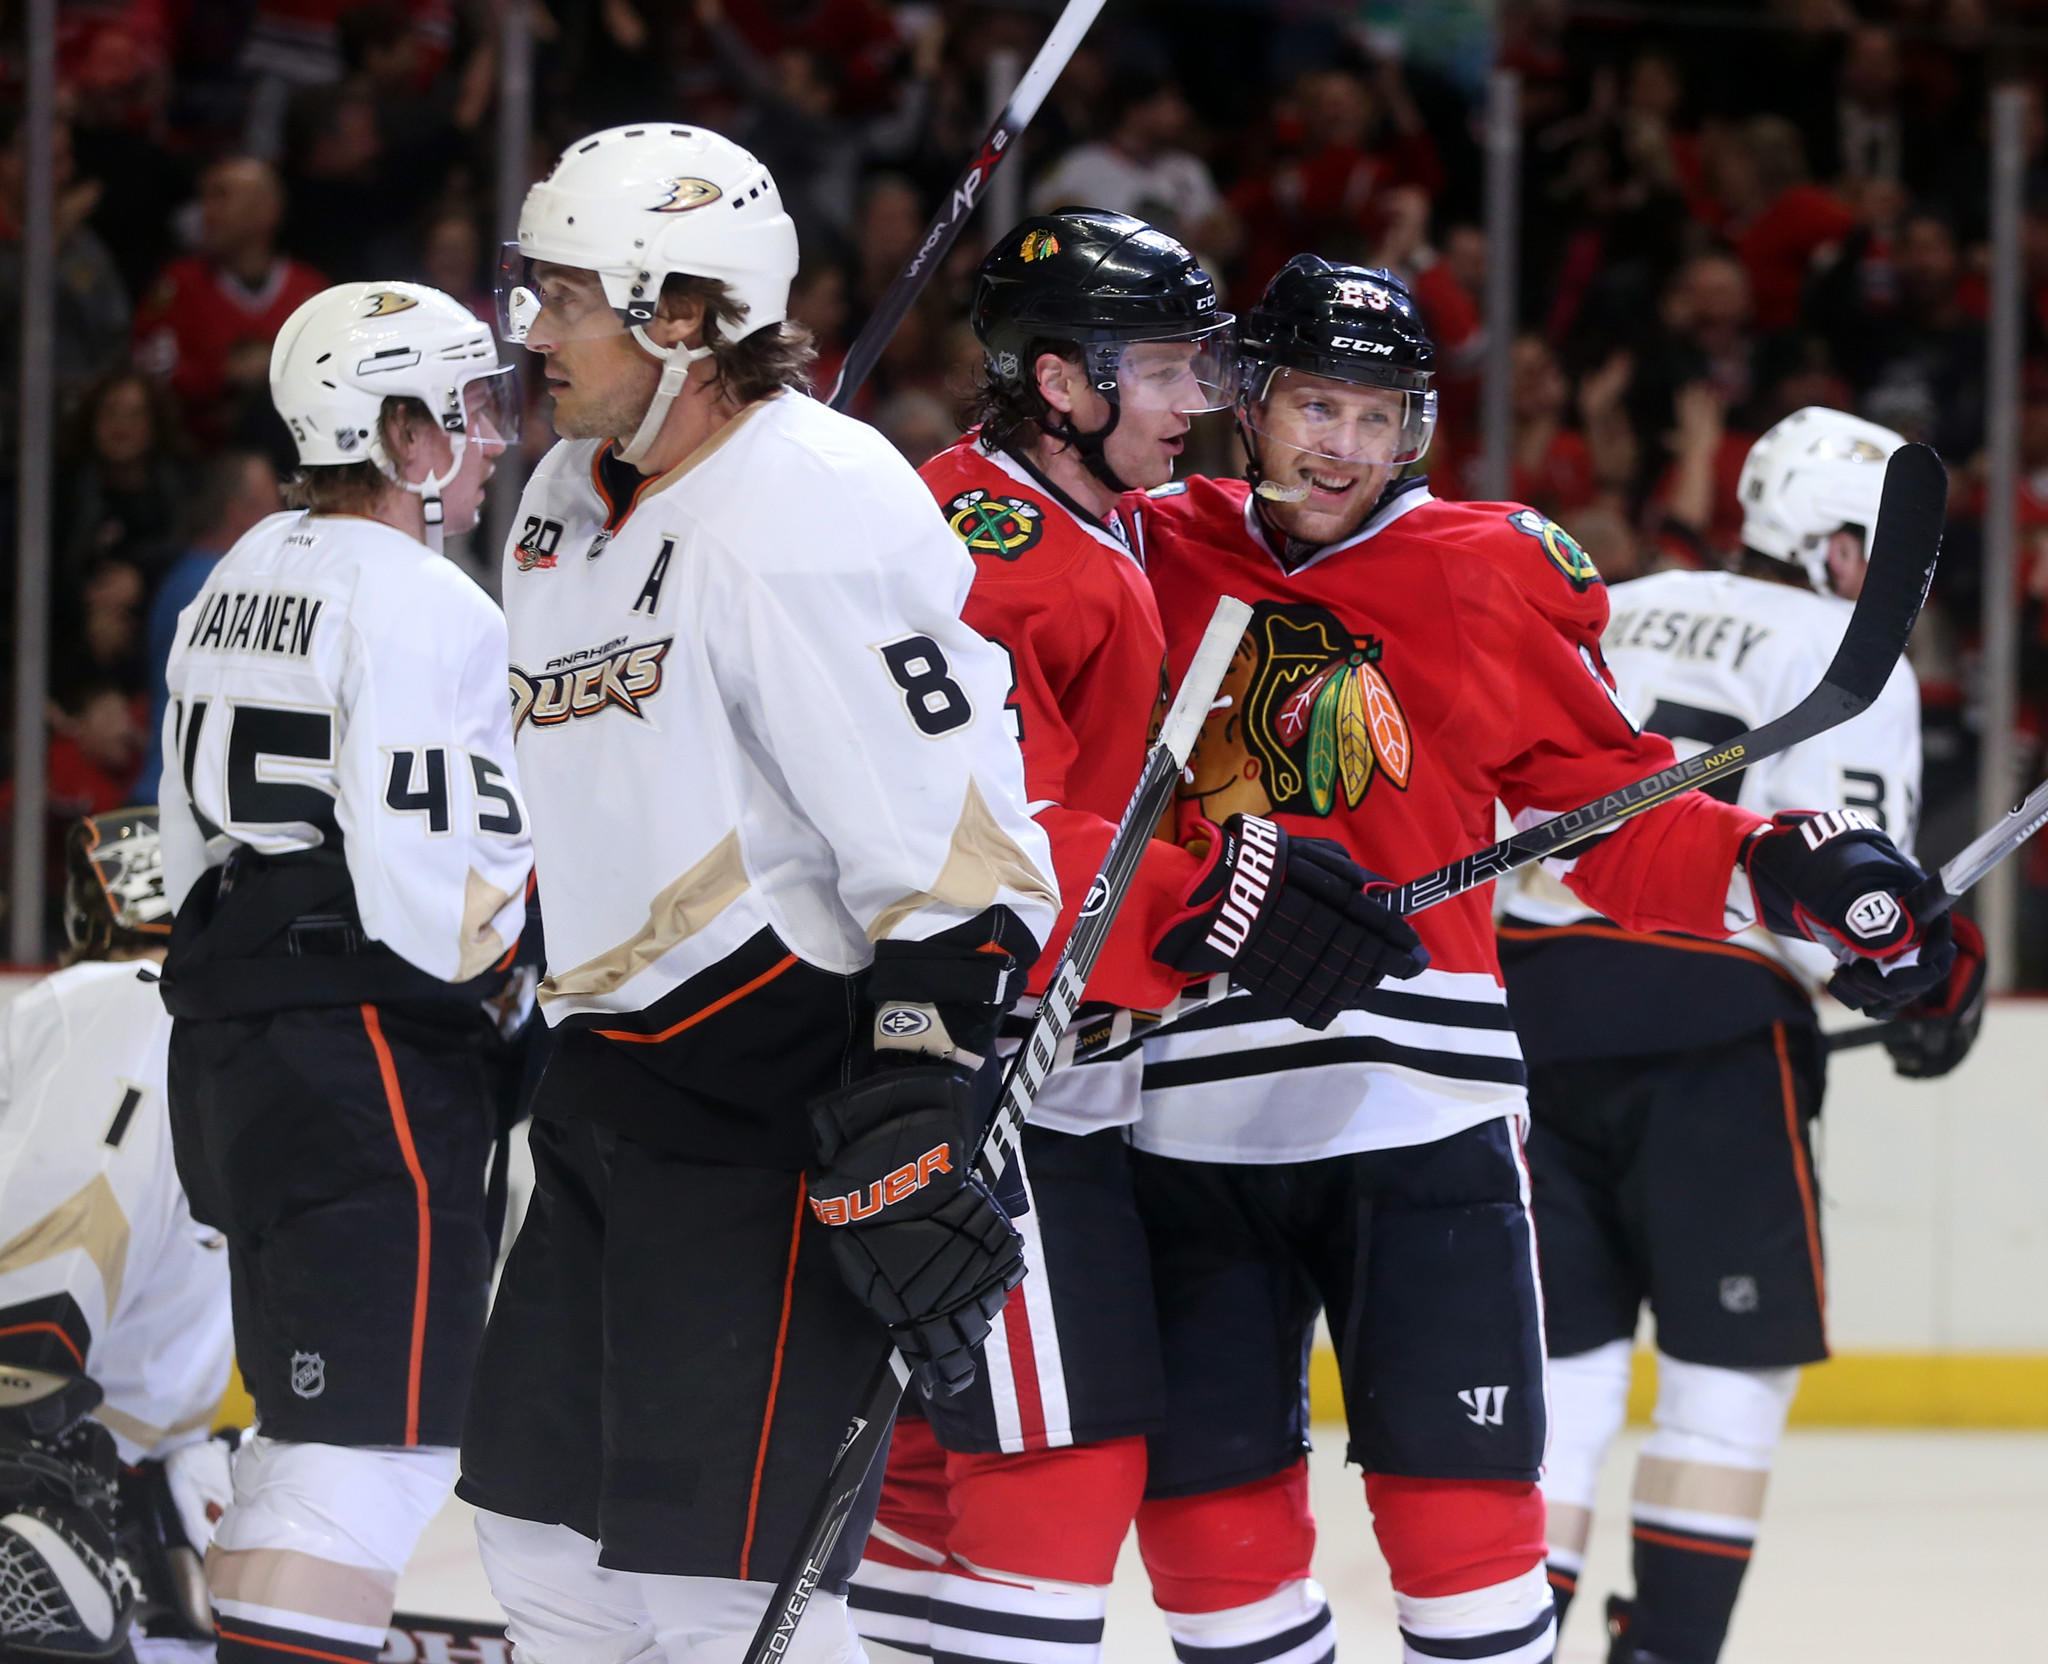 Blackhawks right wing Kris Versteeg (23) celebrates his goal with Duncan Keith against the Ducks.